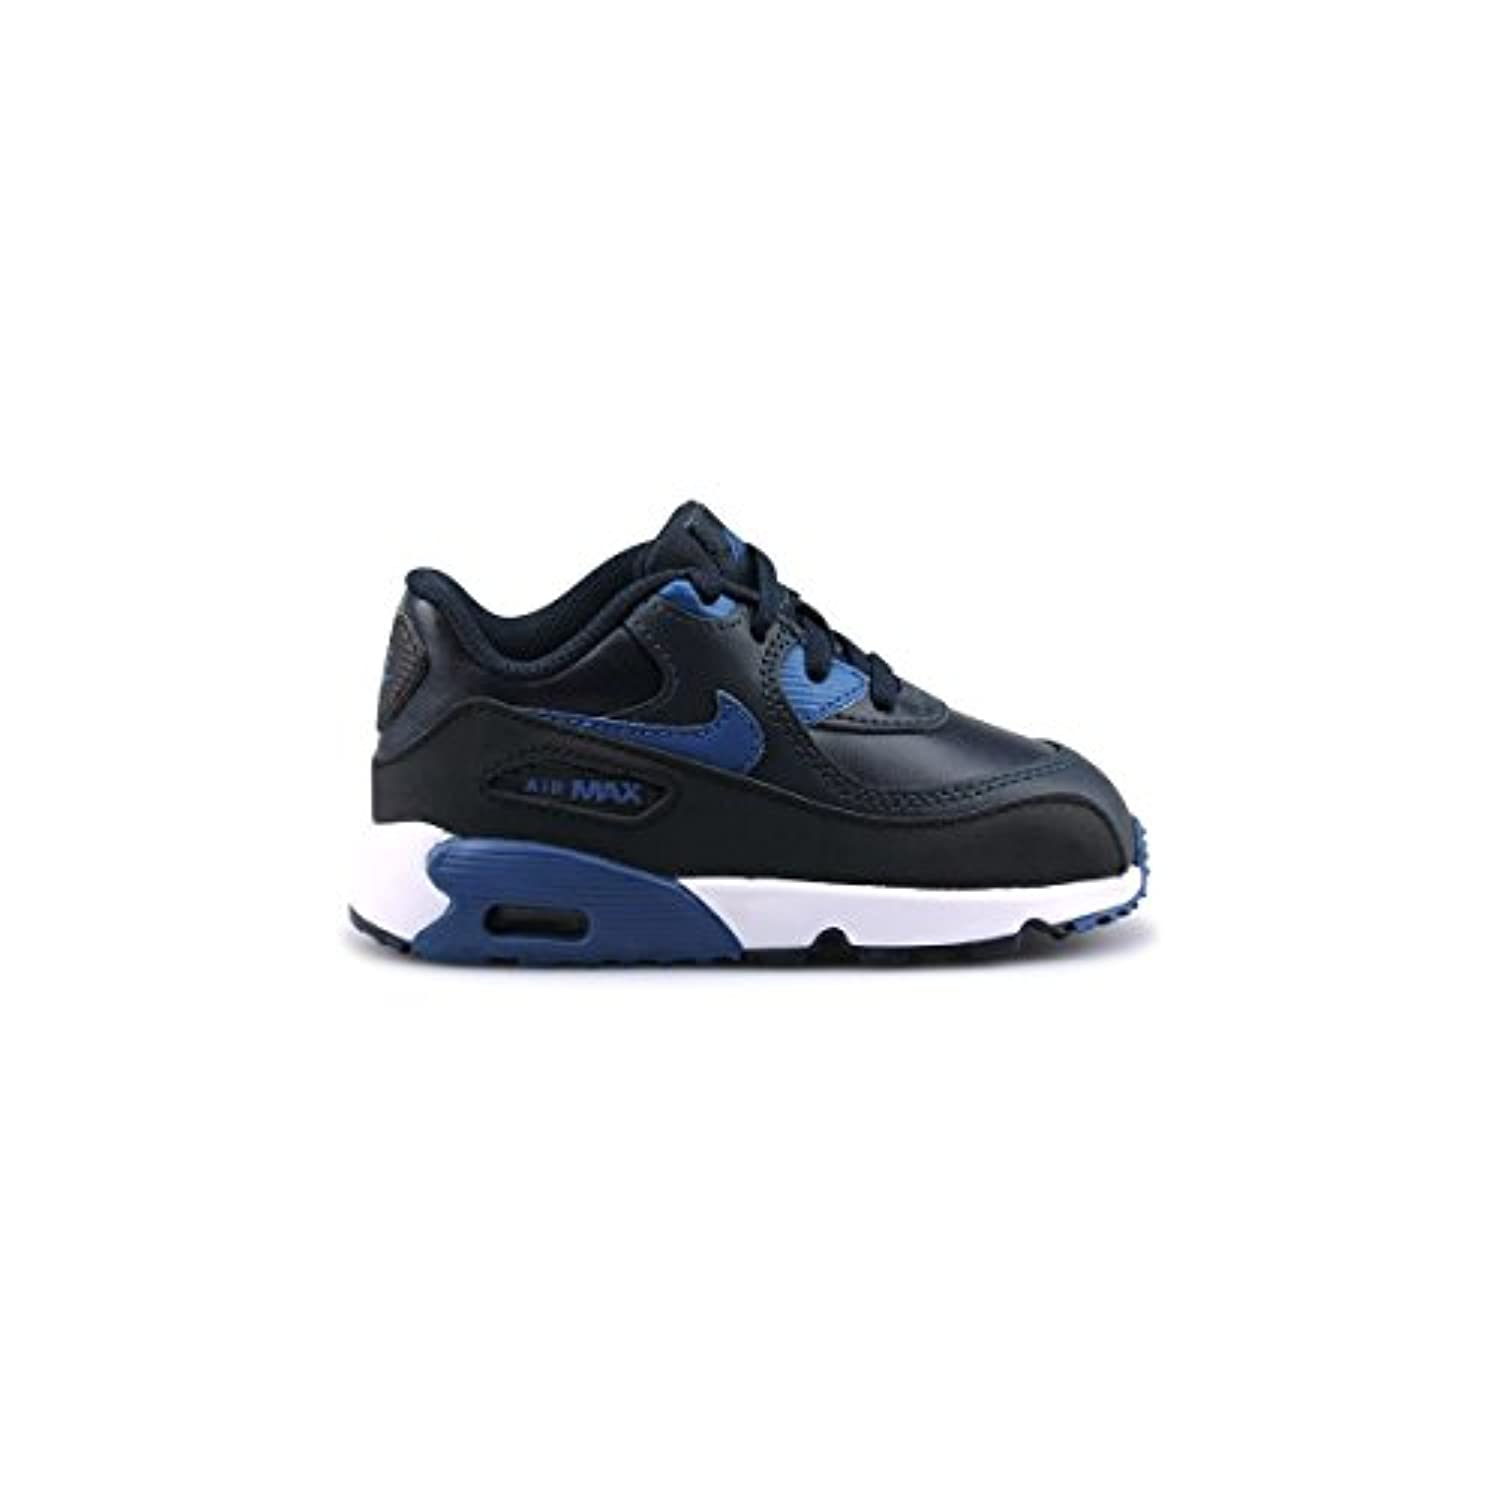 Infant's NIKE Air Max 90 Leather Trainers (UK 3.5 CHILD)